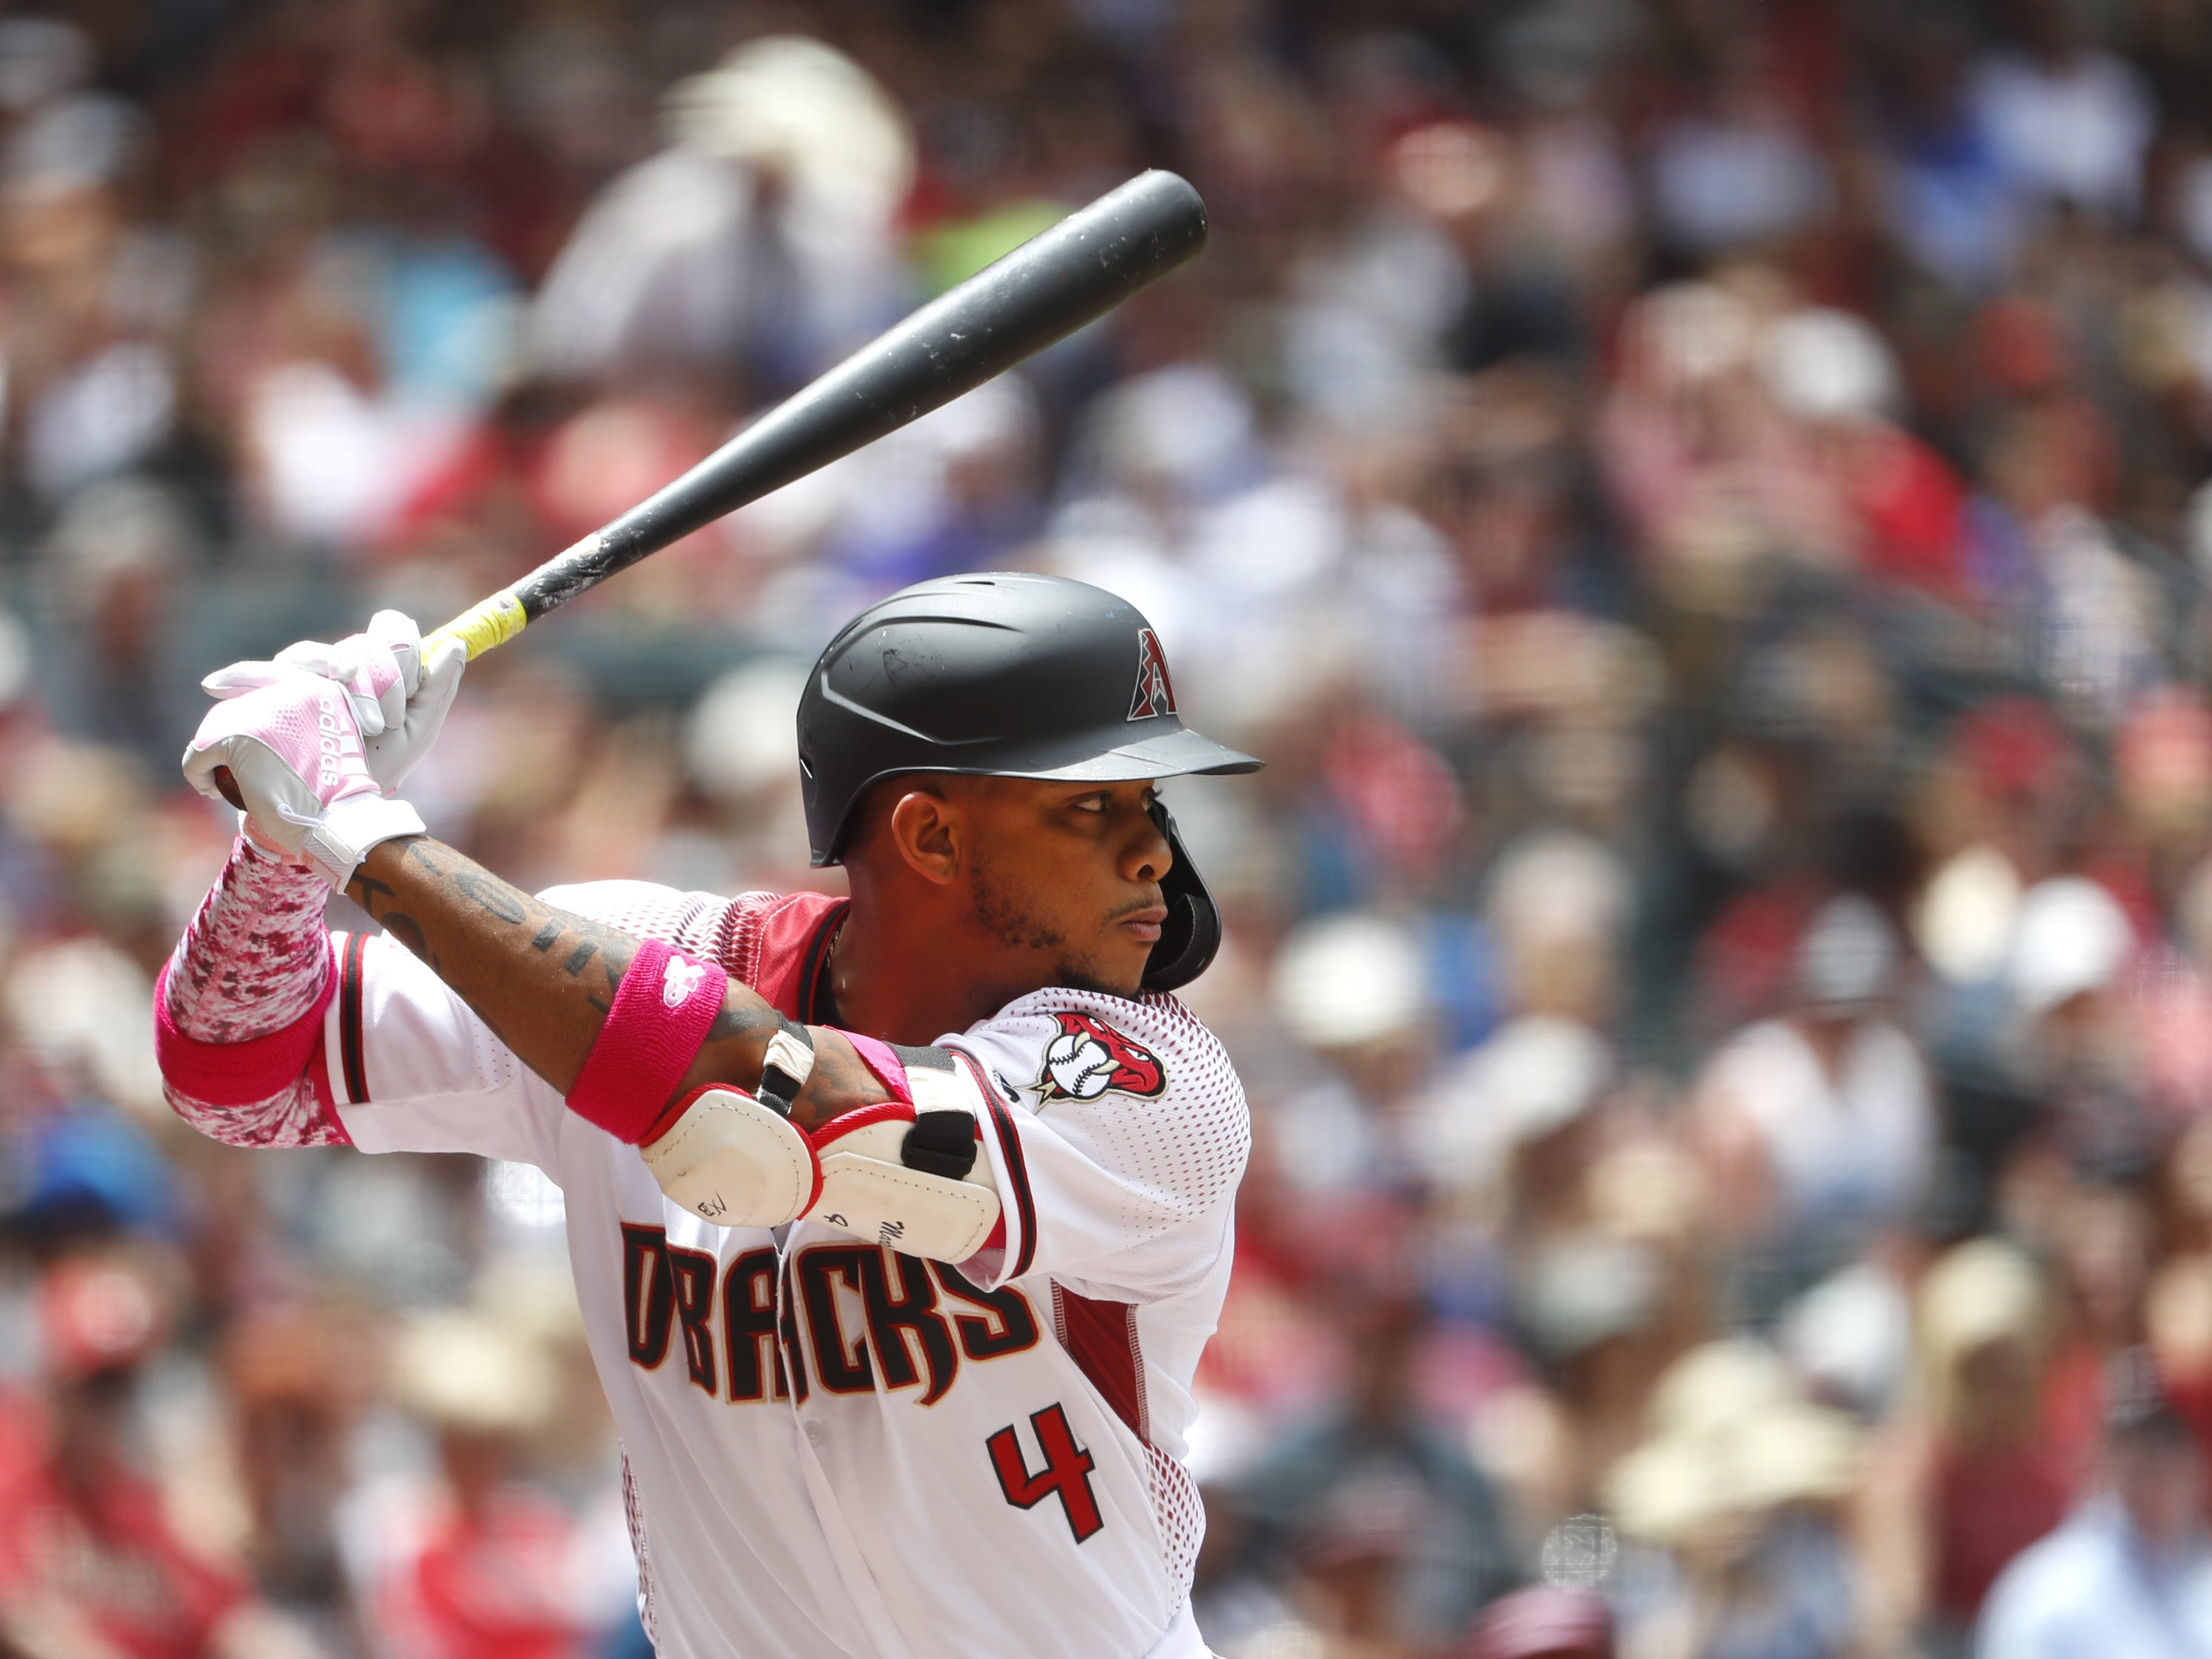 Diamondbacks' Ketel Marte (4) takes to the box against the Braves during the first inning at Chase Field in Phoenix, Ariz. on May 12, 2019.